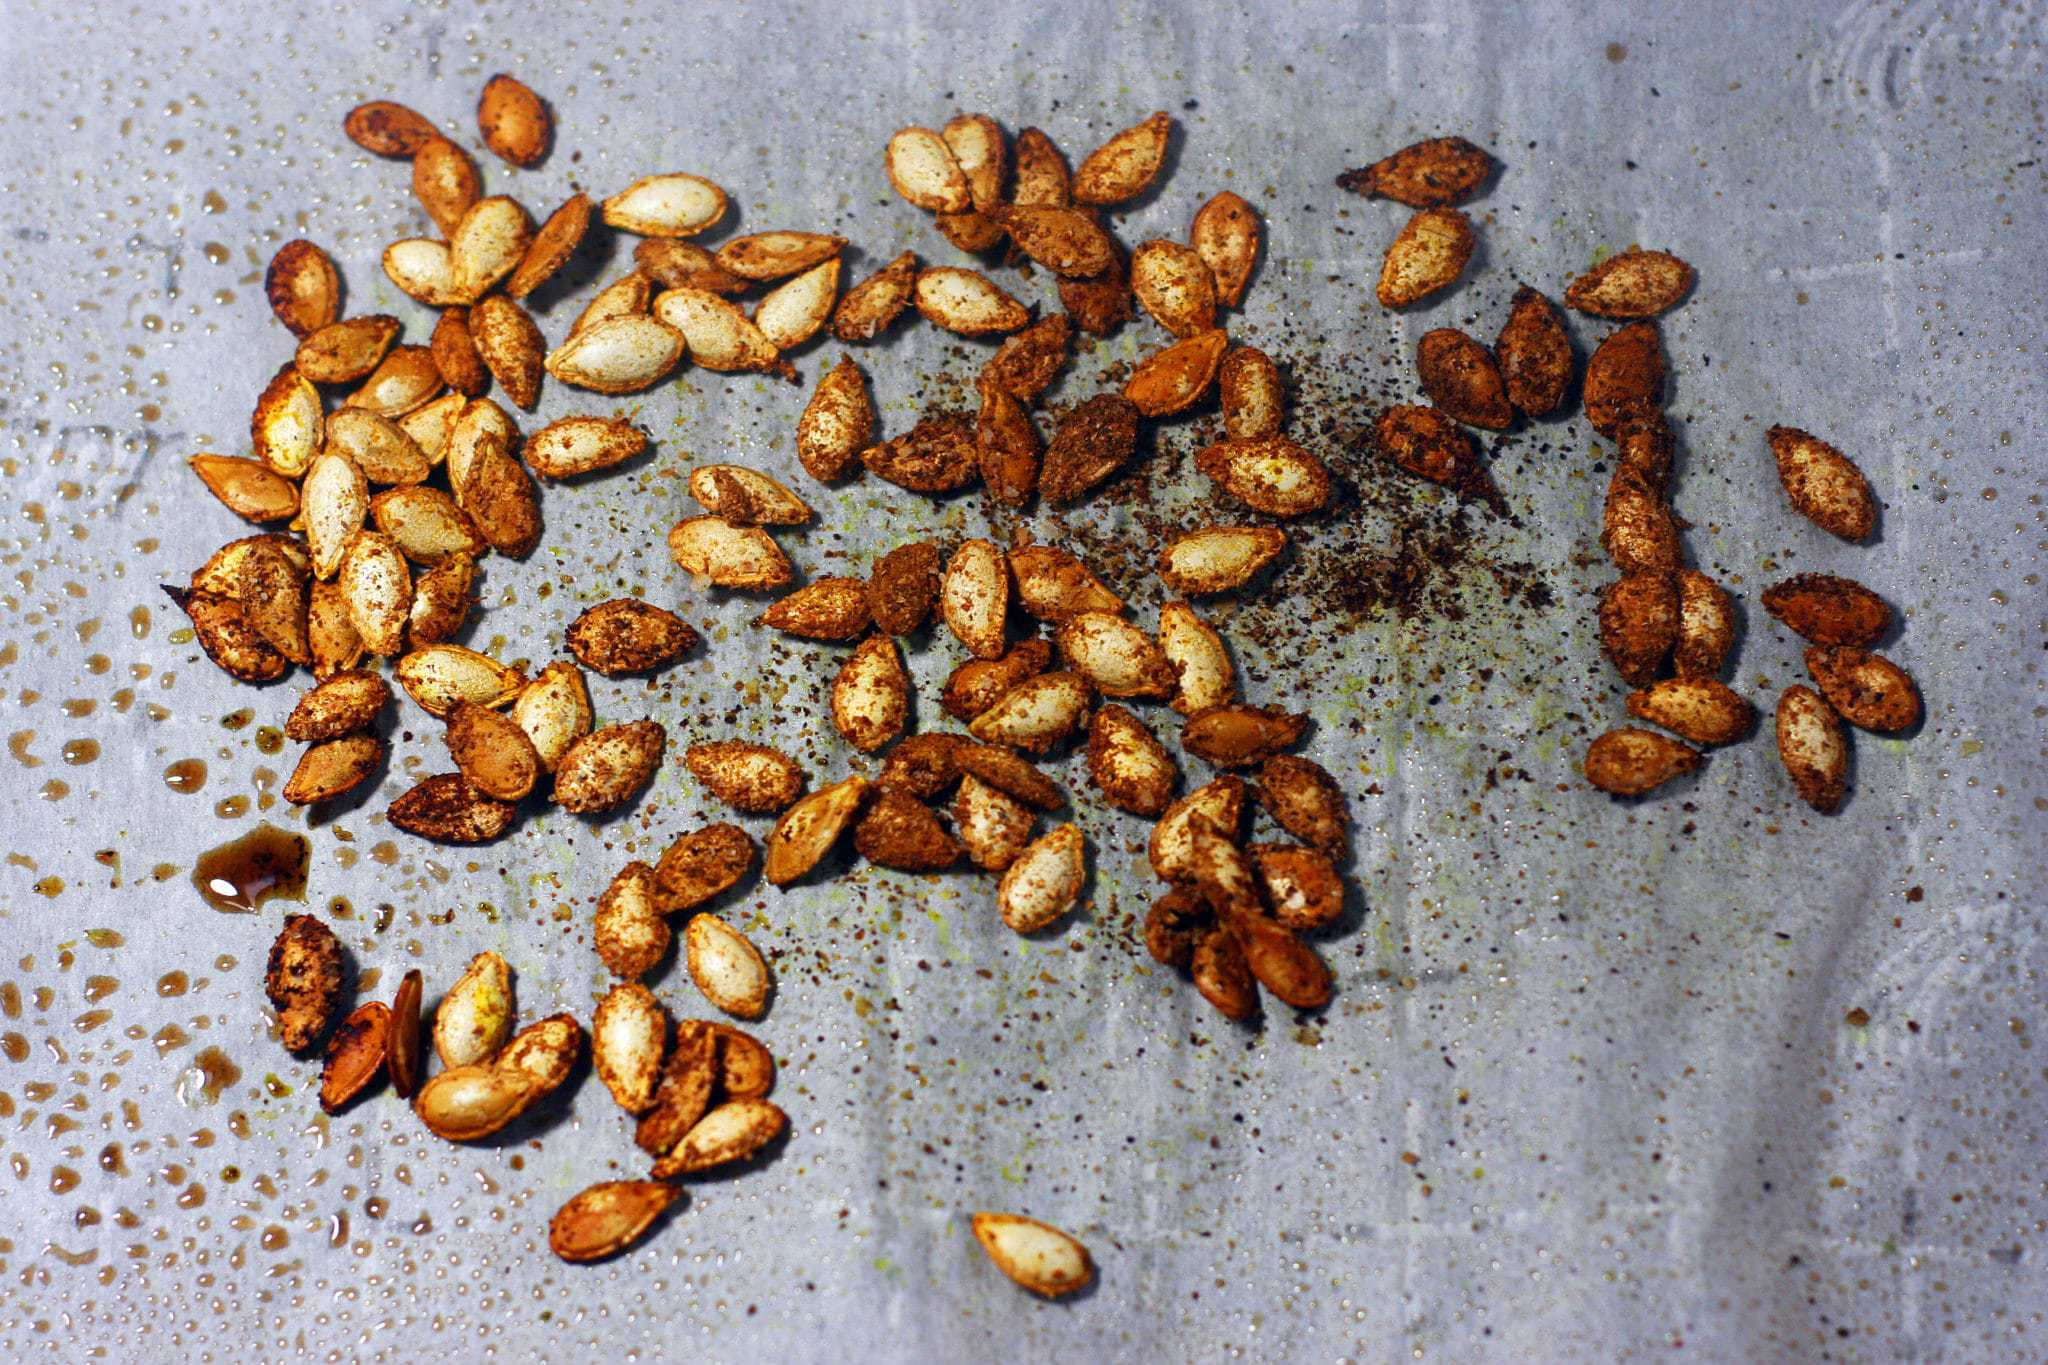 roasted winter squash seasoned seeds